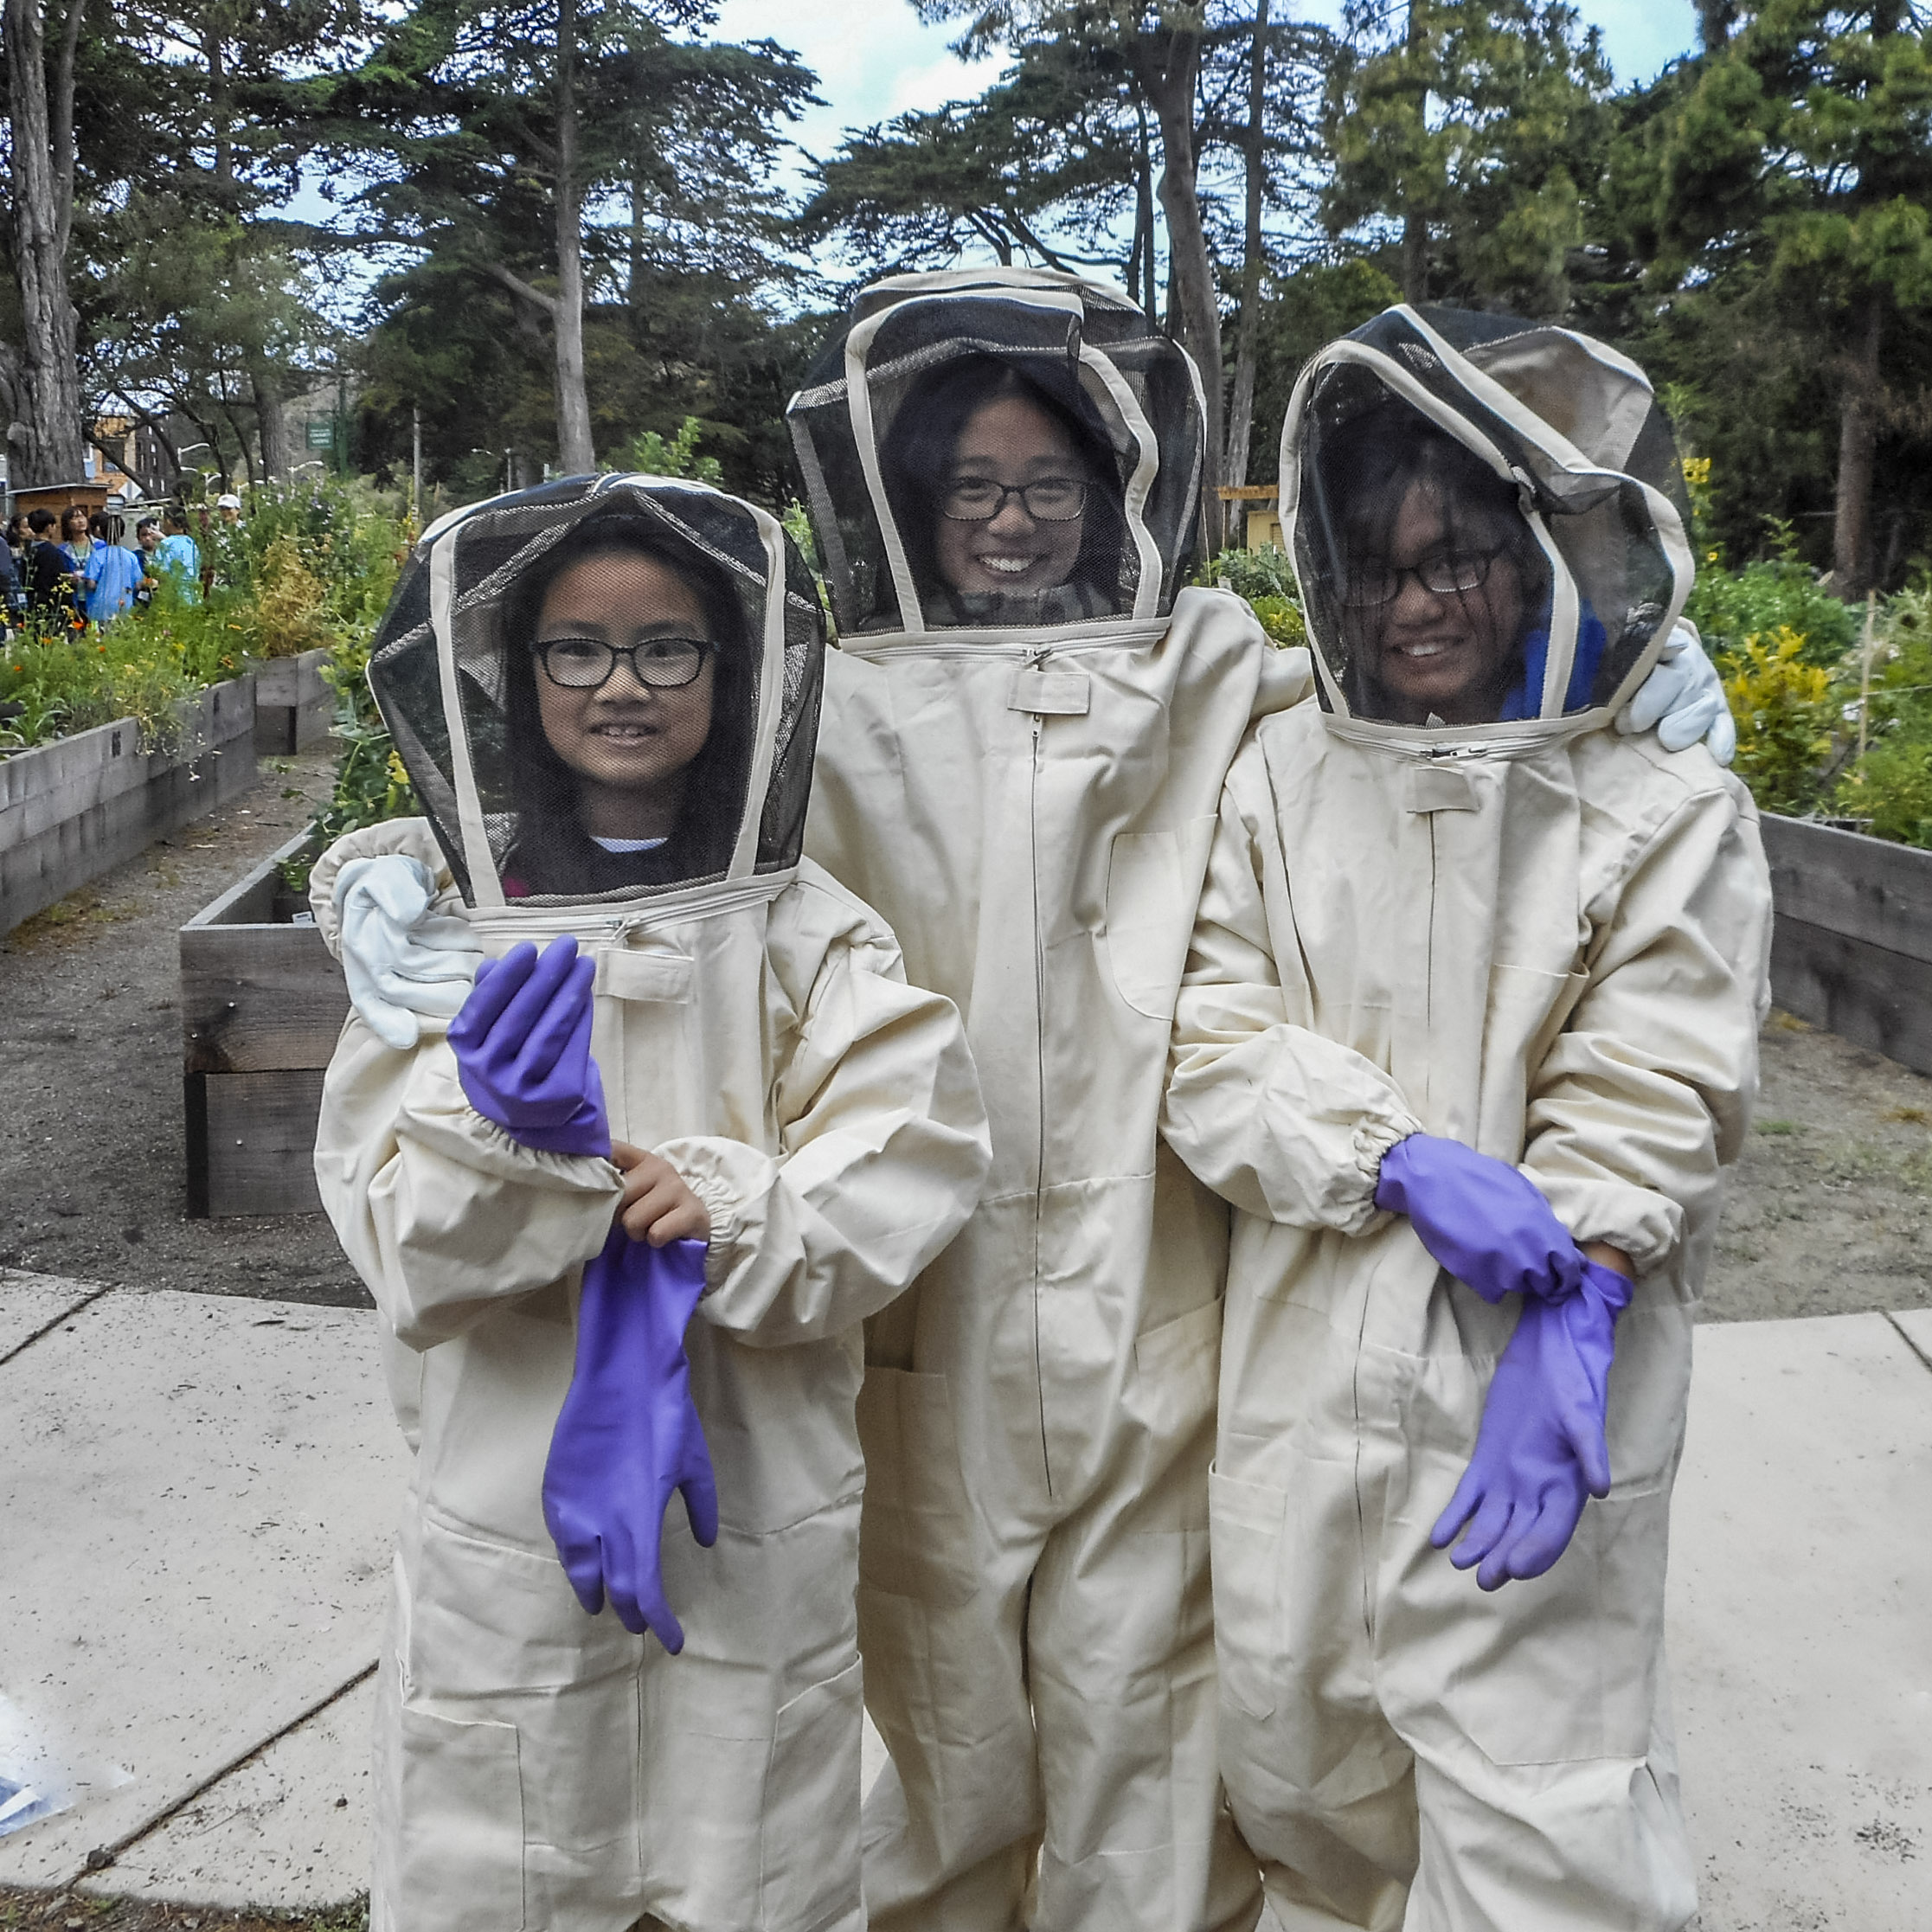 Planet Bee Students Excited to Investigate the Hive__Adopt A Hive_ Photo Courtesy of Planet Bee Foundation..jpg